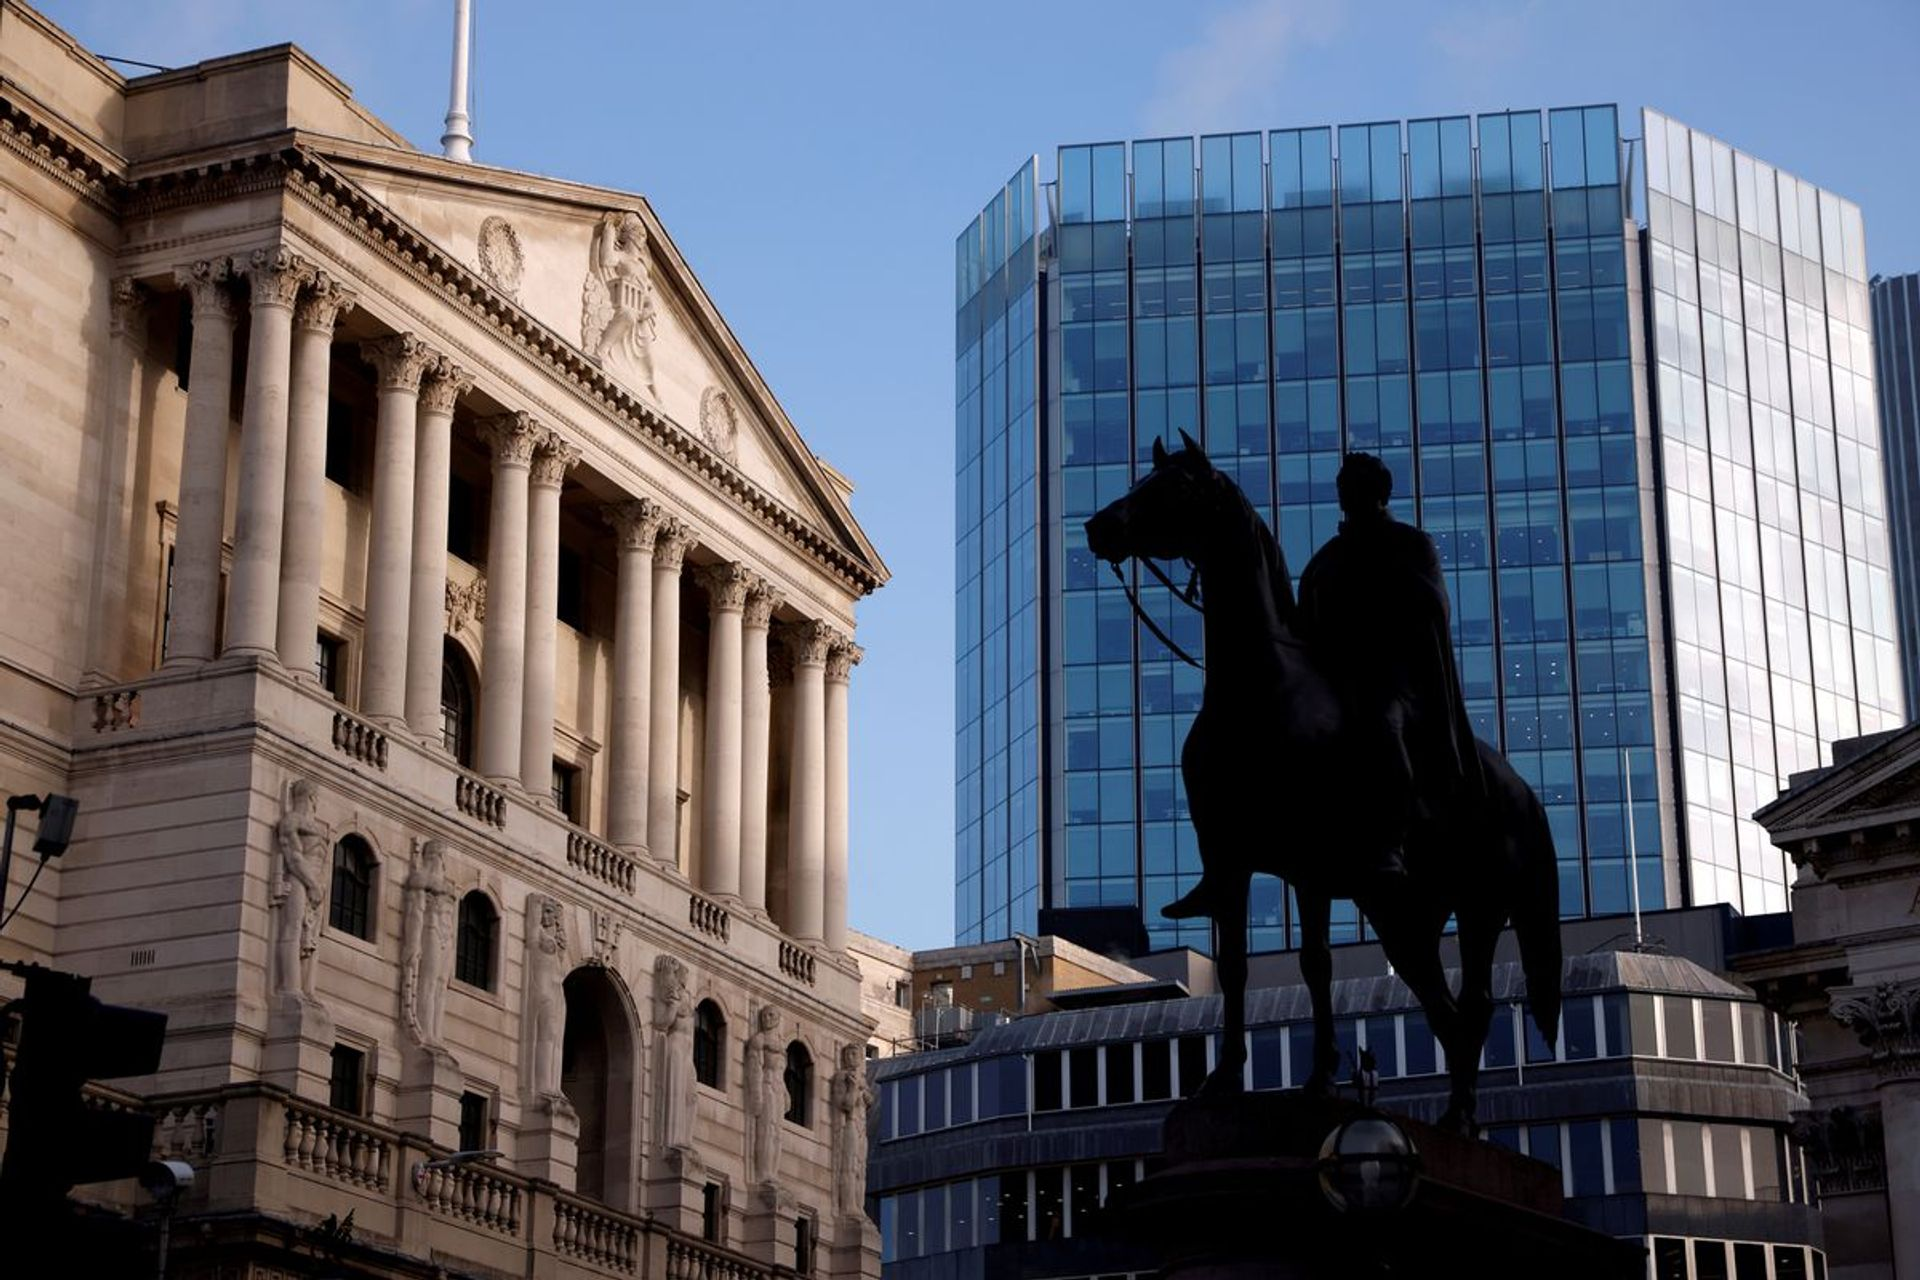 The Bank of England in London has reviewed a number of works in its collection for their connection to slavers Courtesy of Investopedia